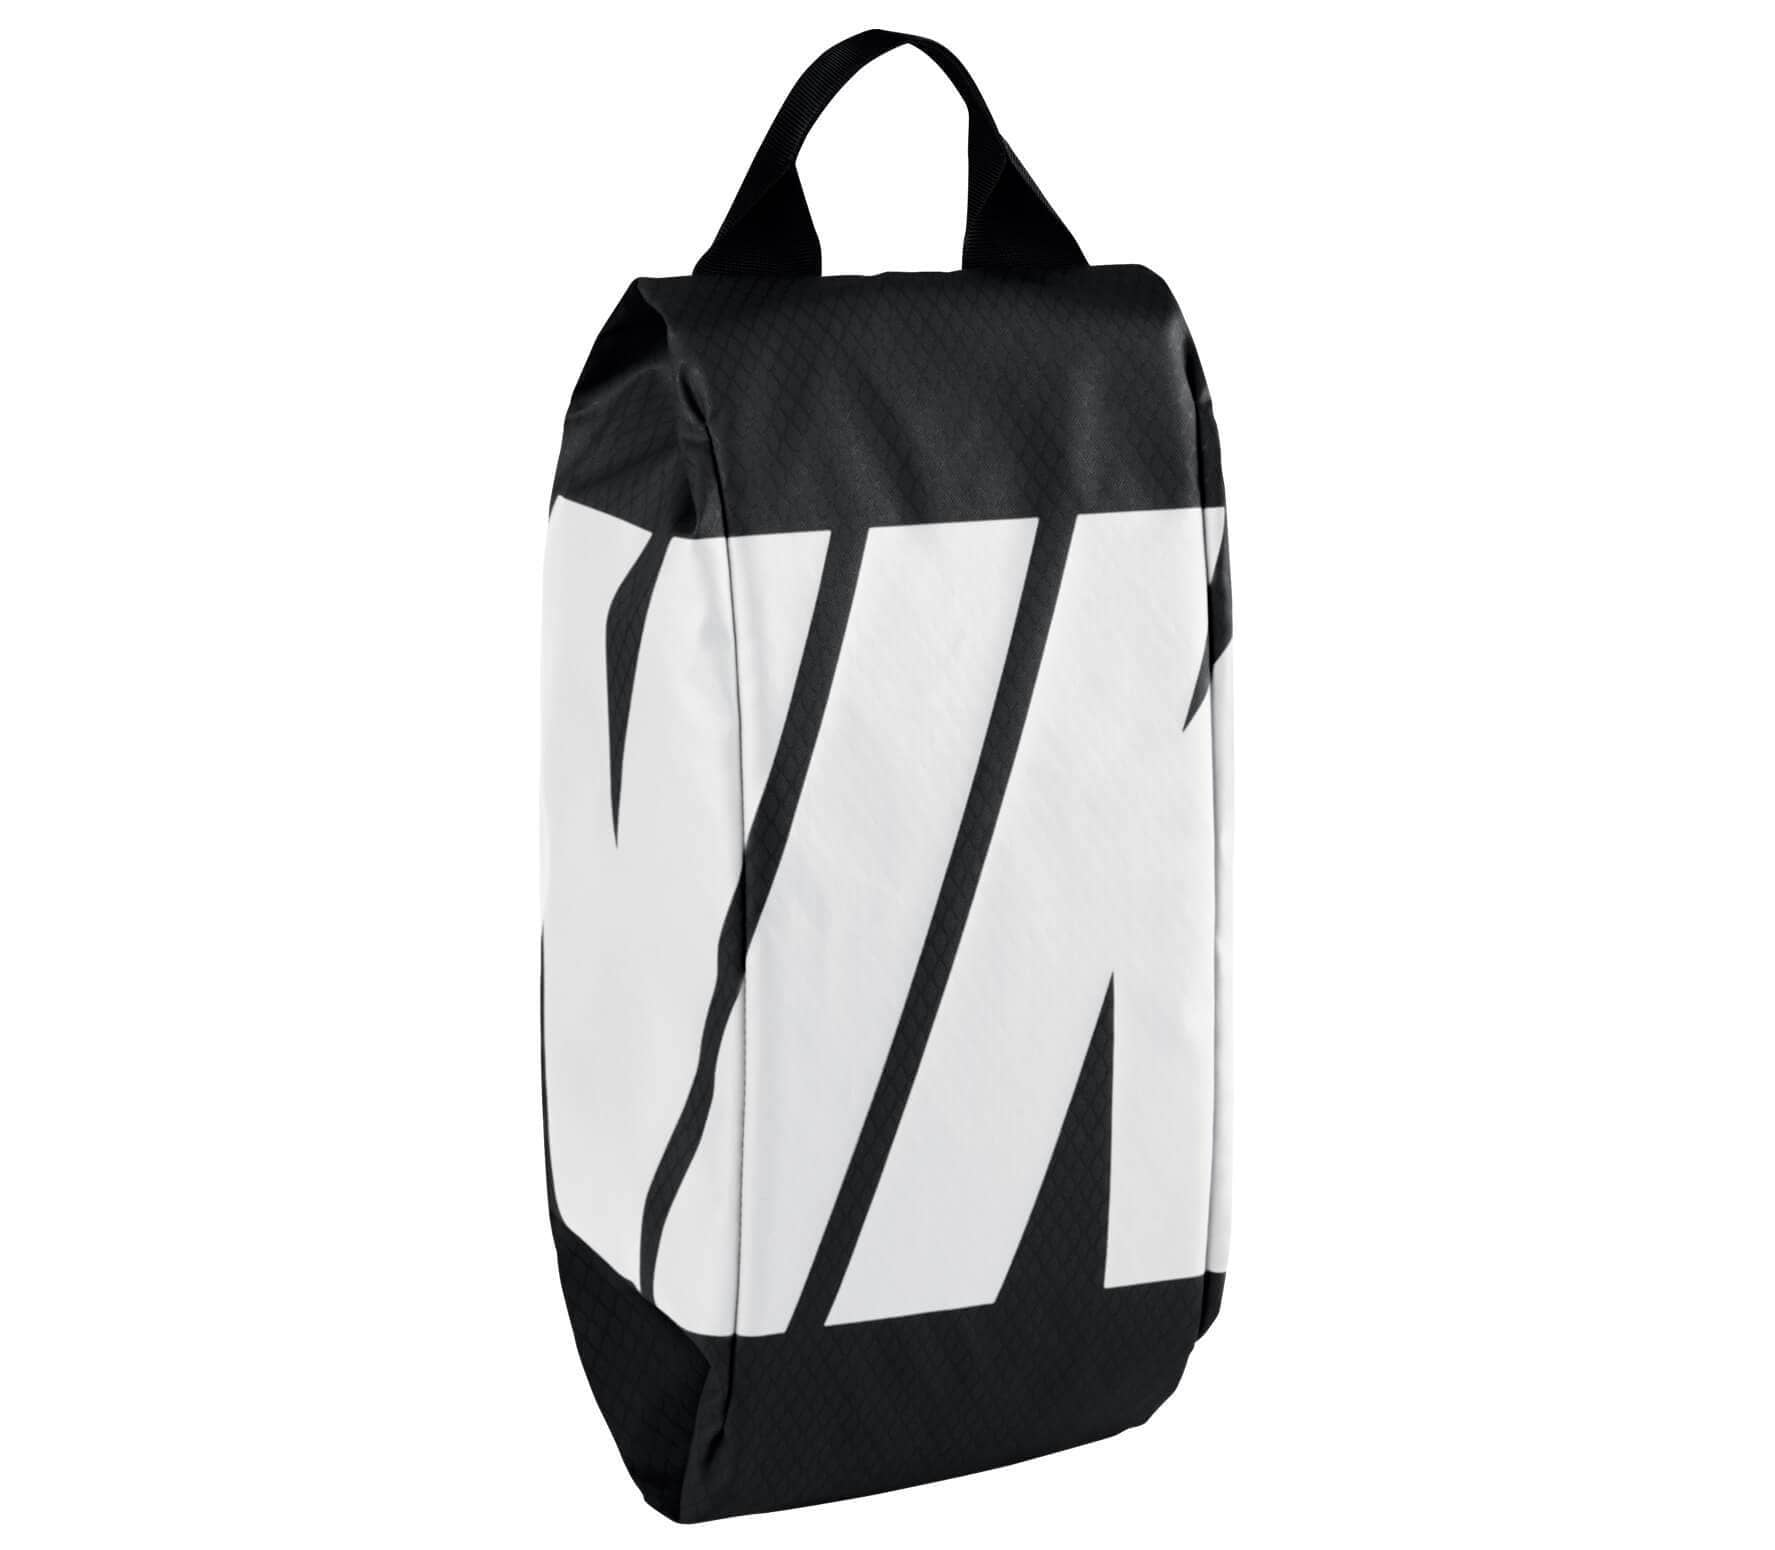 Nike - Team men s training shoe bag (black) - buy it at the Keller ... 0acb2f556d049